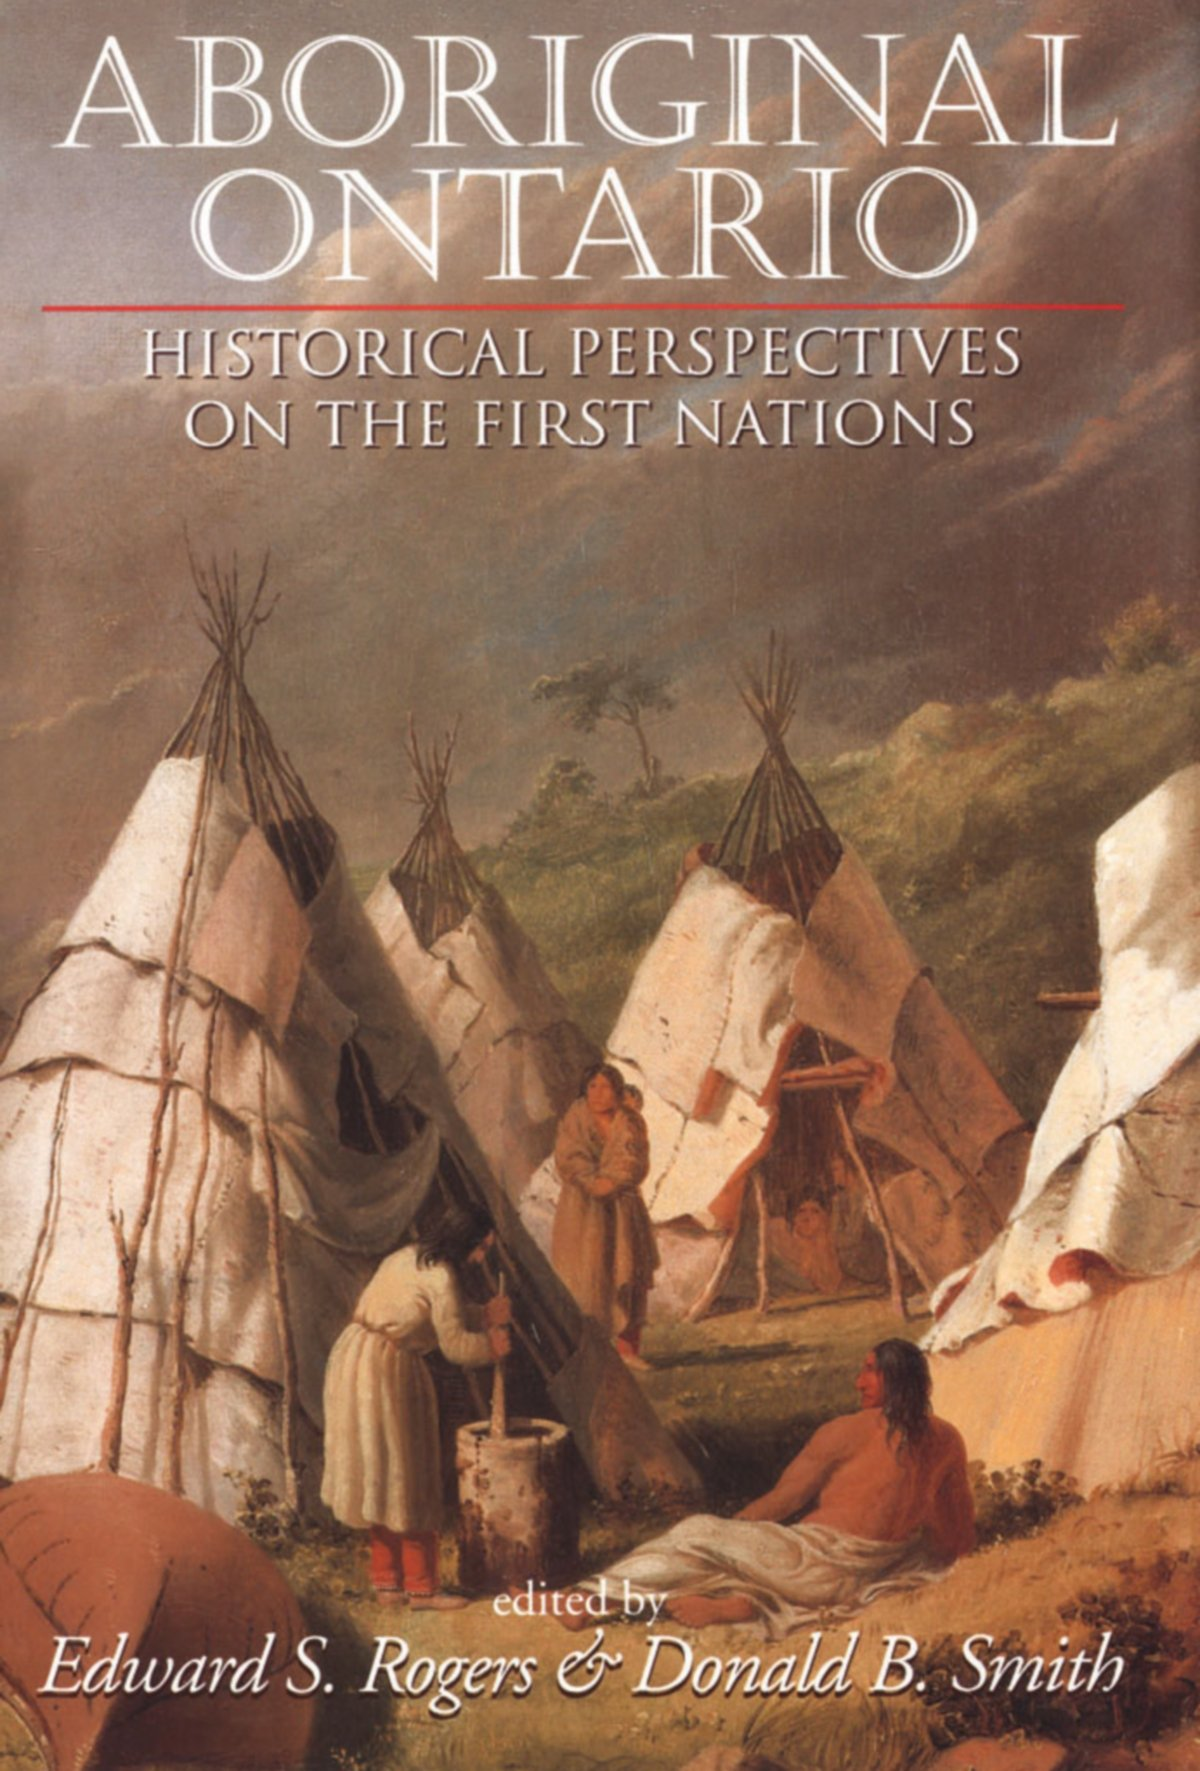 Aboriginal Ontario: Historical Perspectives on the First Nations